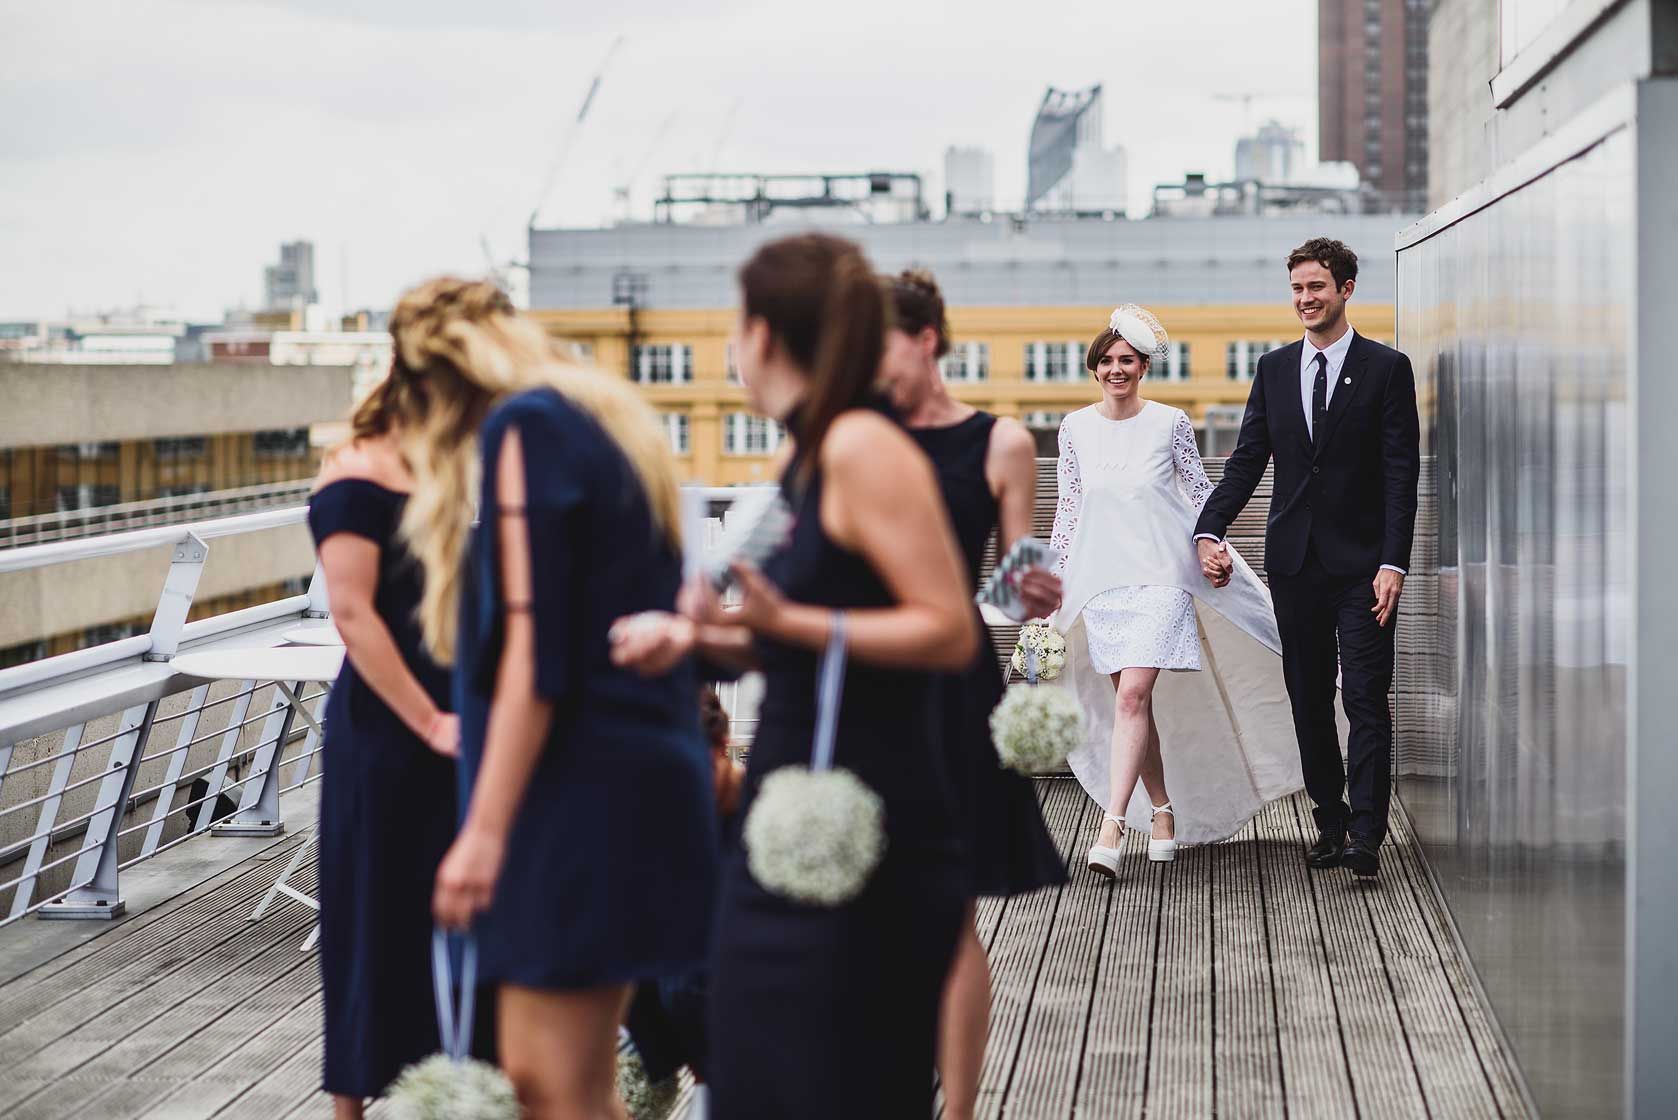 Wedding Photographer at National Theatre